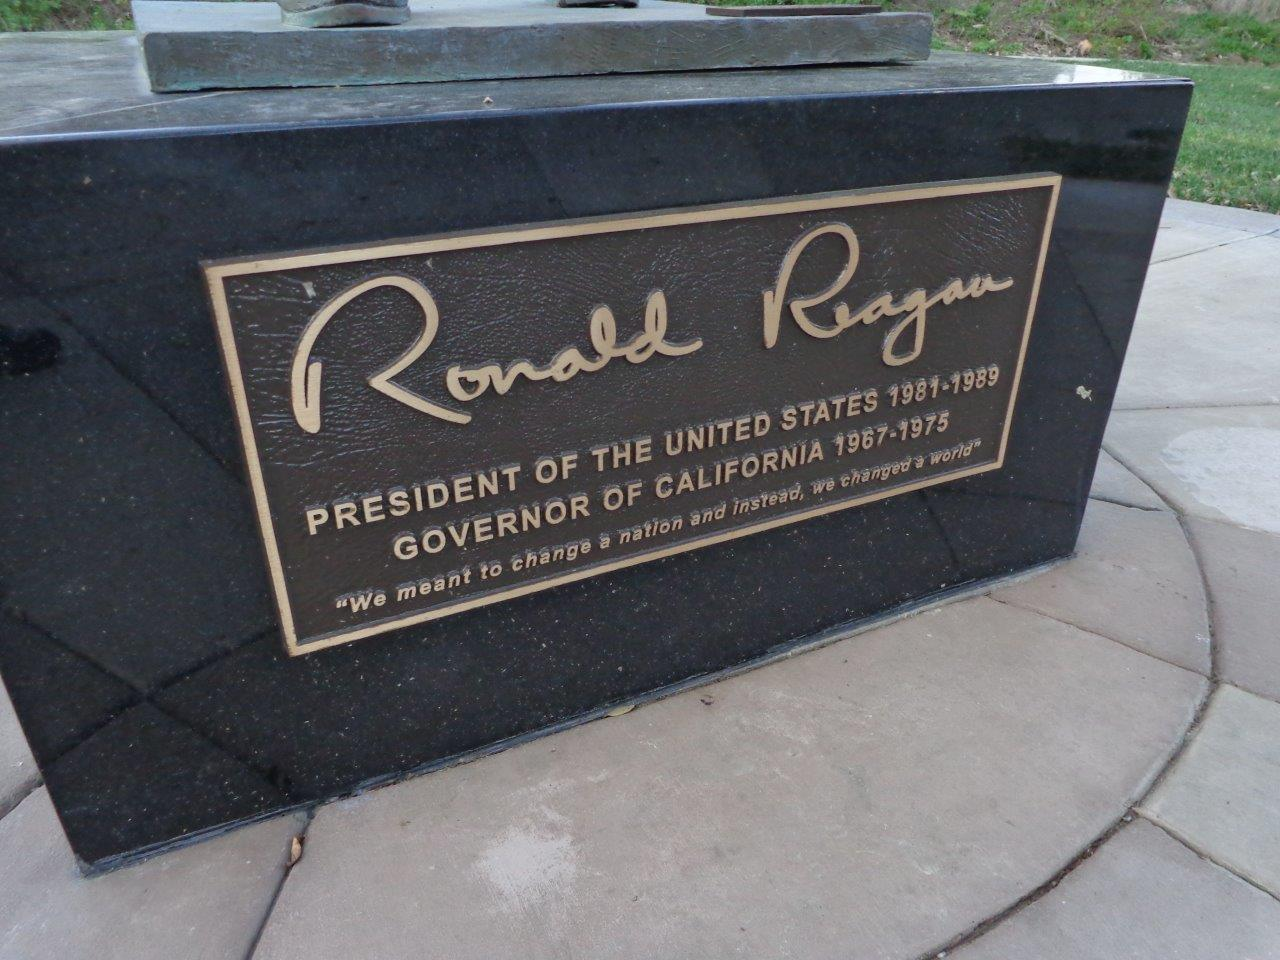 Reagan Statue in Newport Beach, California